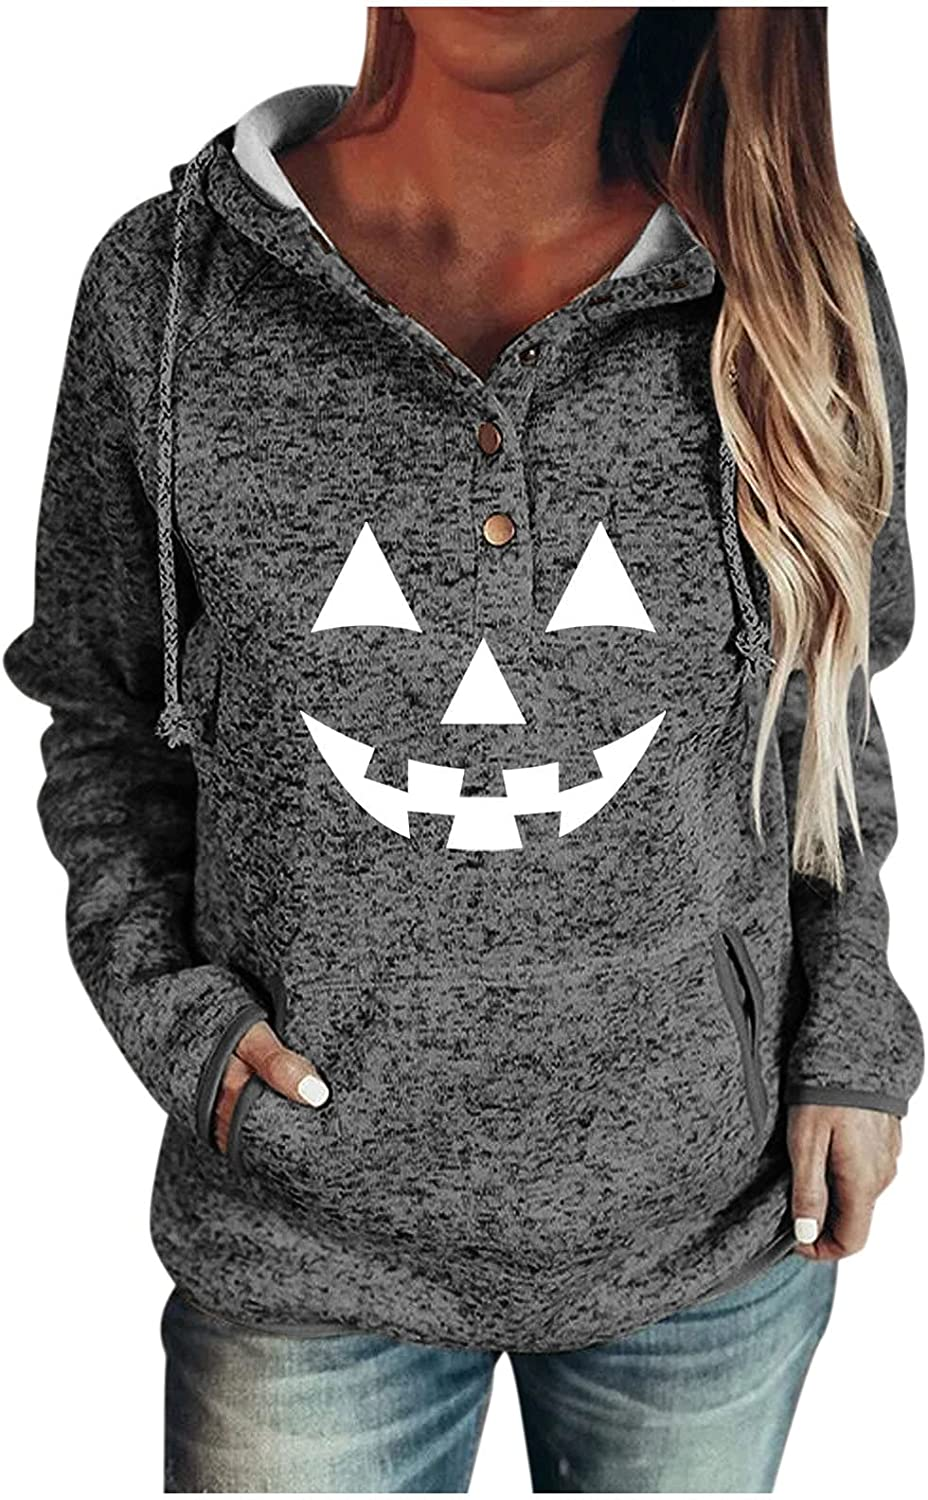 Xinantime Women's Single-Breasted Sweatshirt Hooded Patchwork Halloween Print Tops Ladies Long-Sleeved Blouse with Pockets